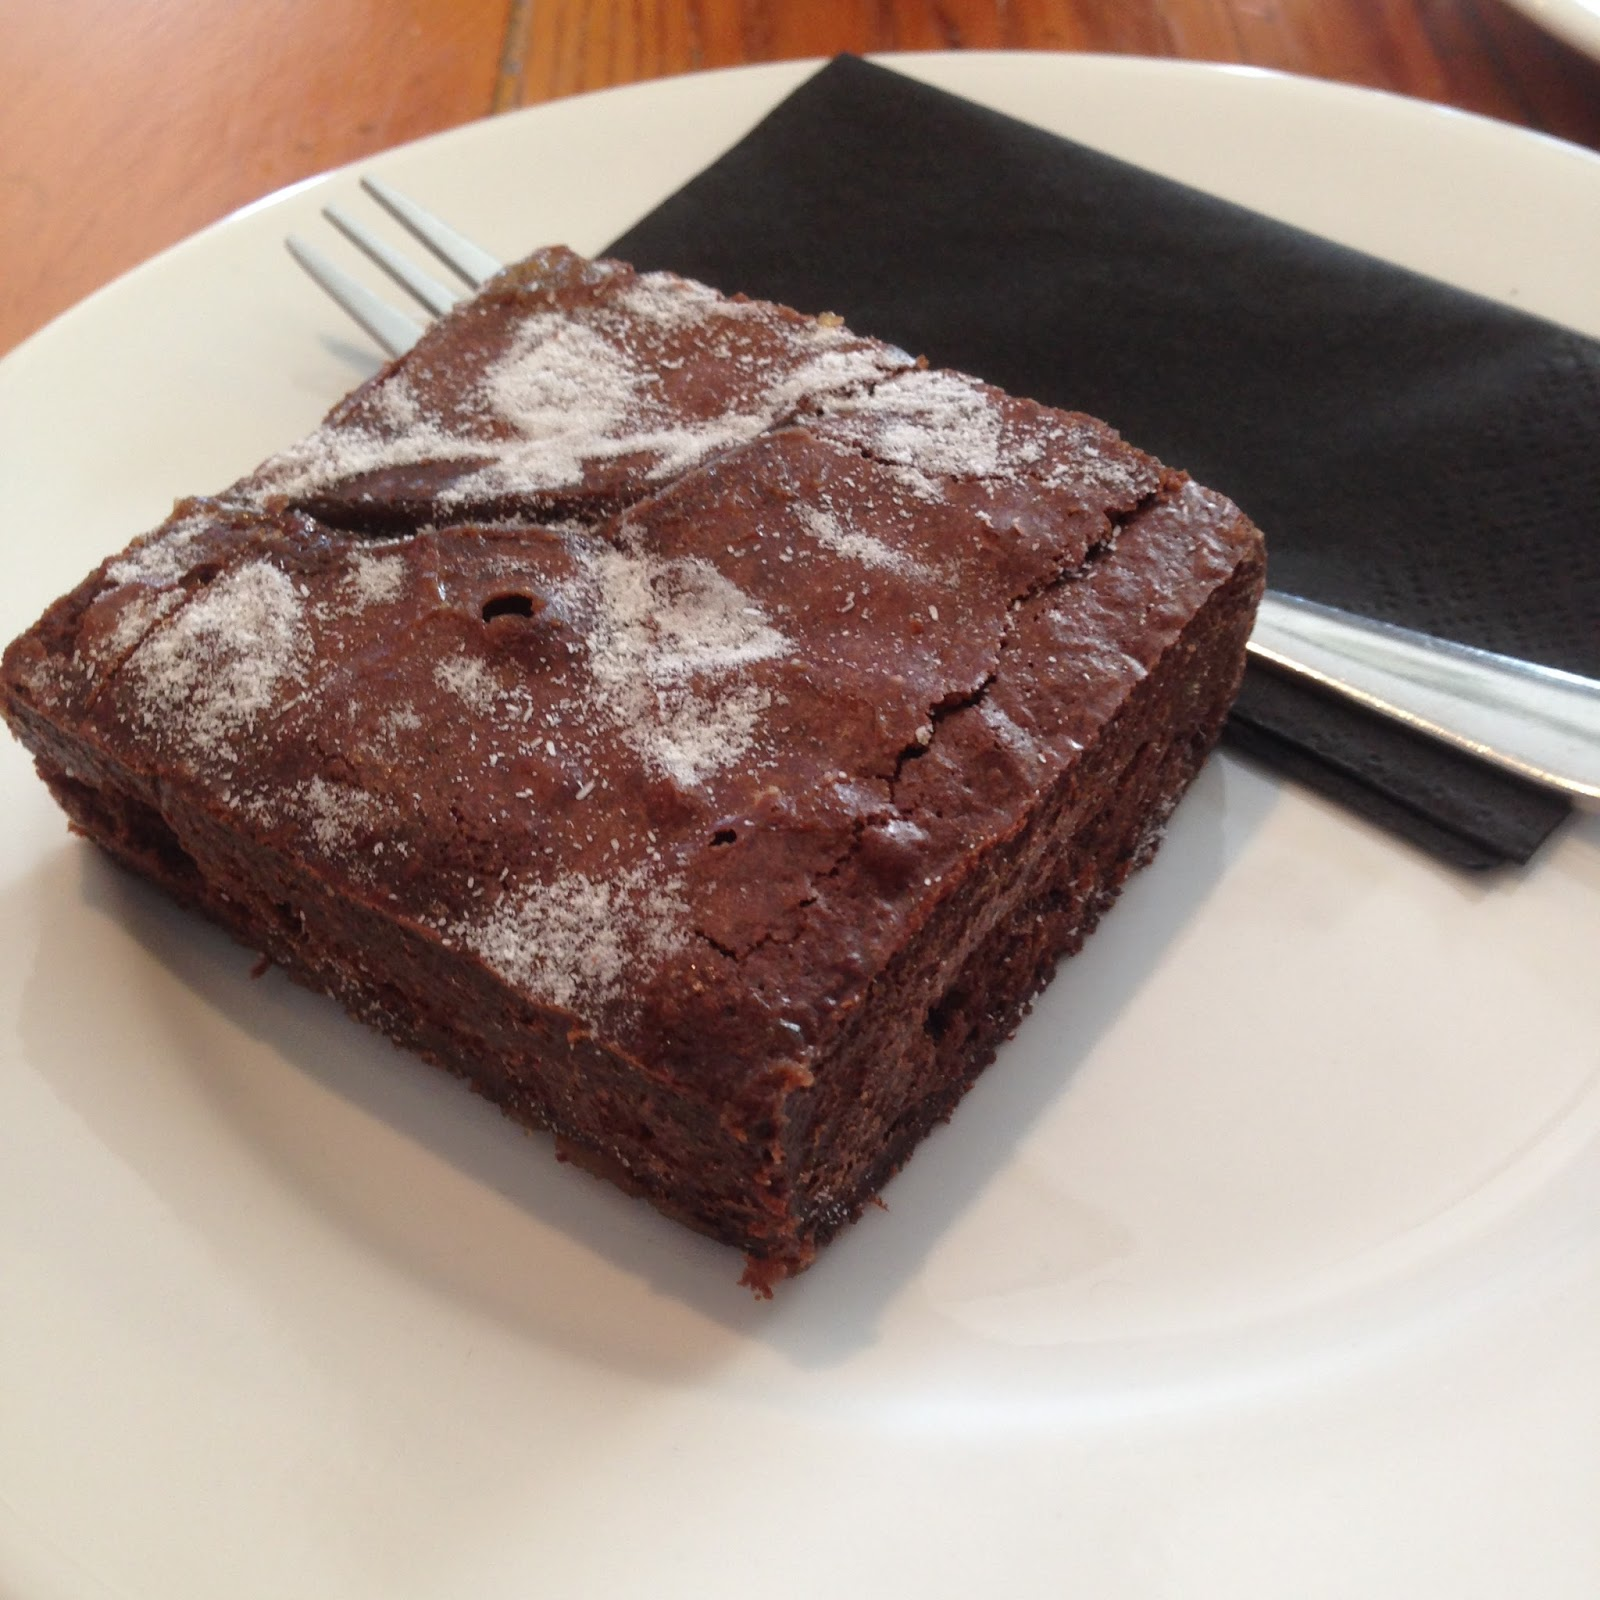 the stranded store, adelaide, food, colonel light gardens, brownie, caramel, chocolate, local, lunch, cakes, dessert, sweets